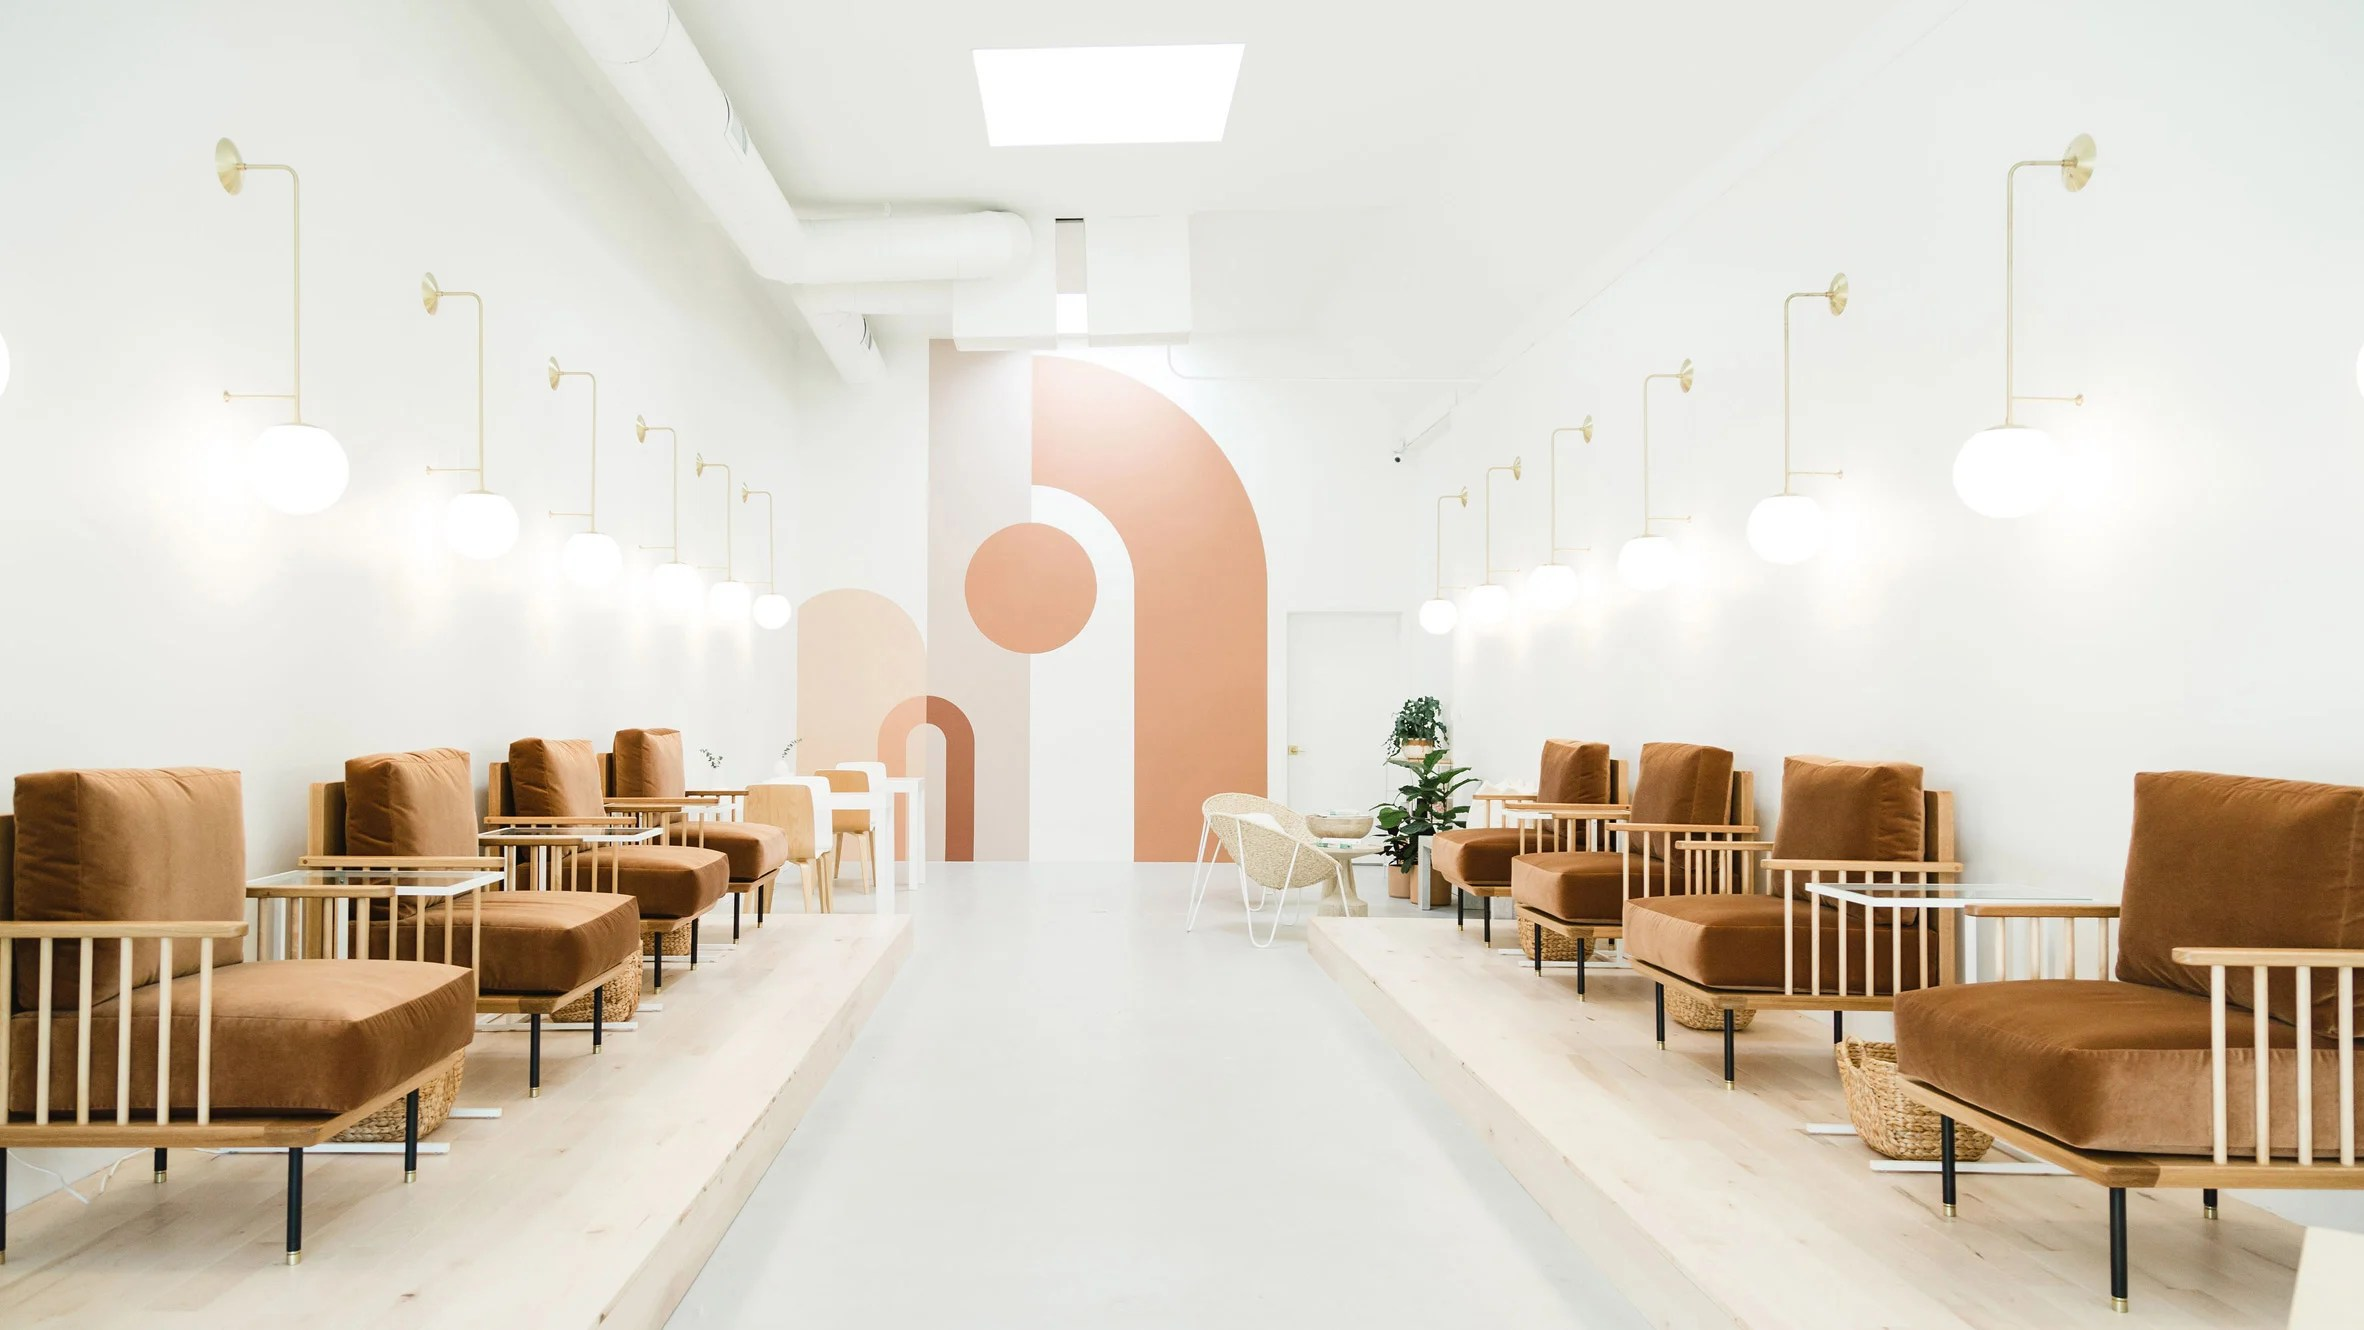 Design De Salon Katie Gebhardt Opts For Simplicity At Leo Nail Salon In San Diego